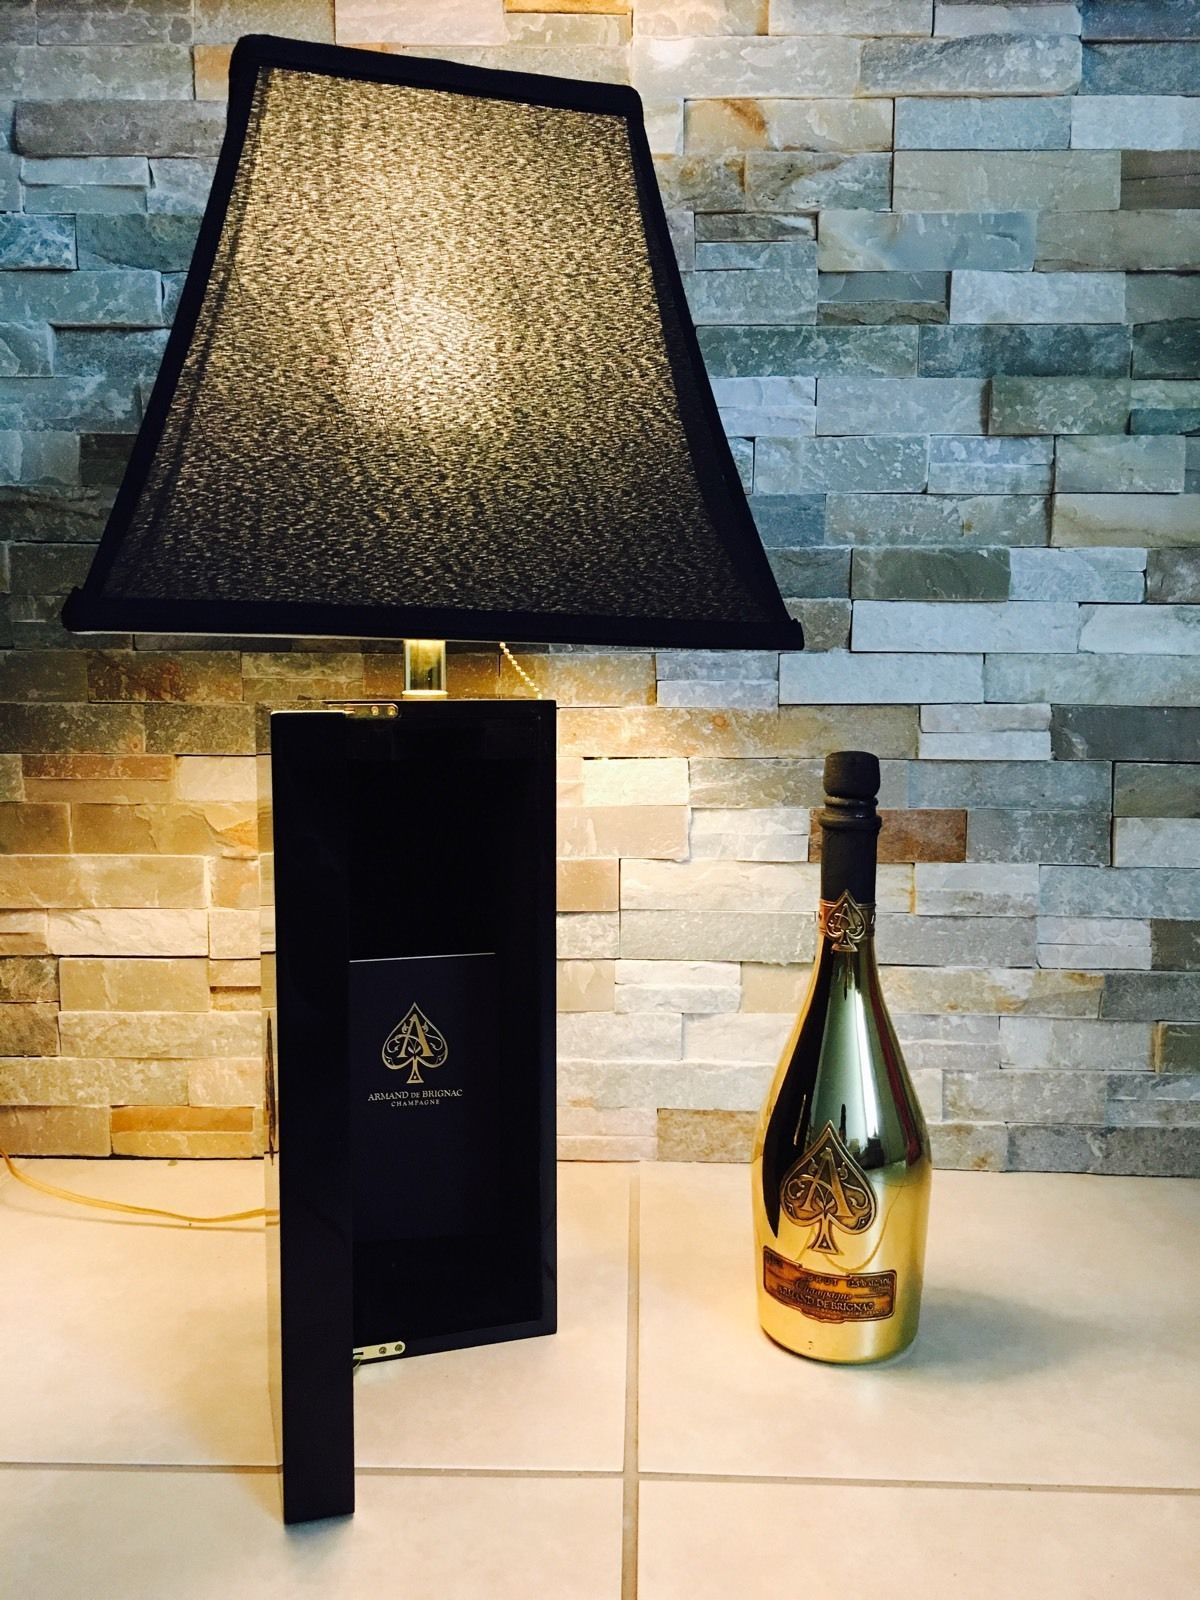 Buy a custom ace of spades champagne lampbottle and book included custom made ace of spades champagne lampbottle and book included reviewsmspy